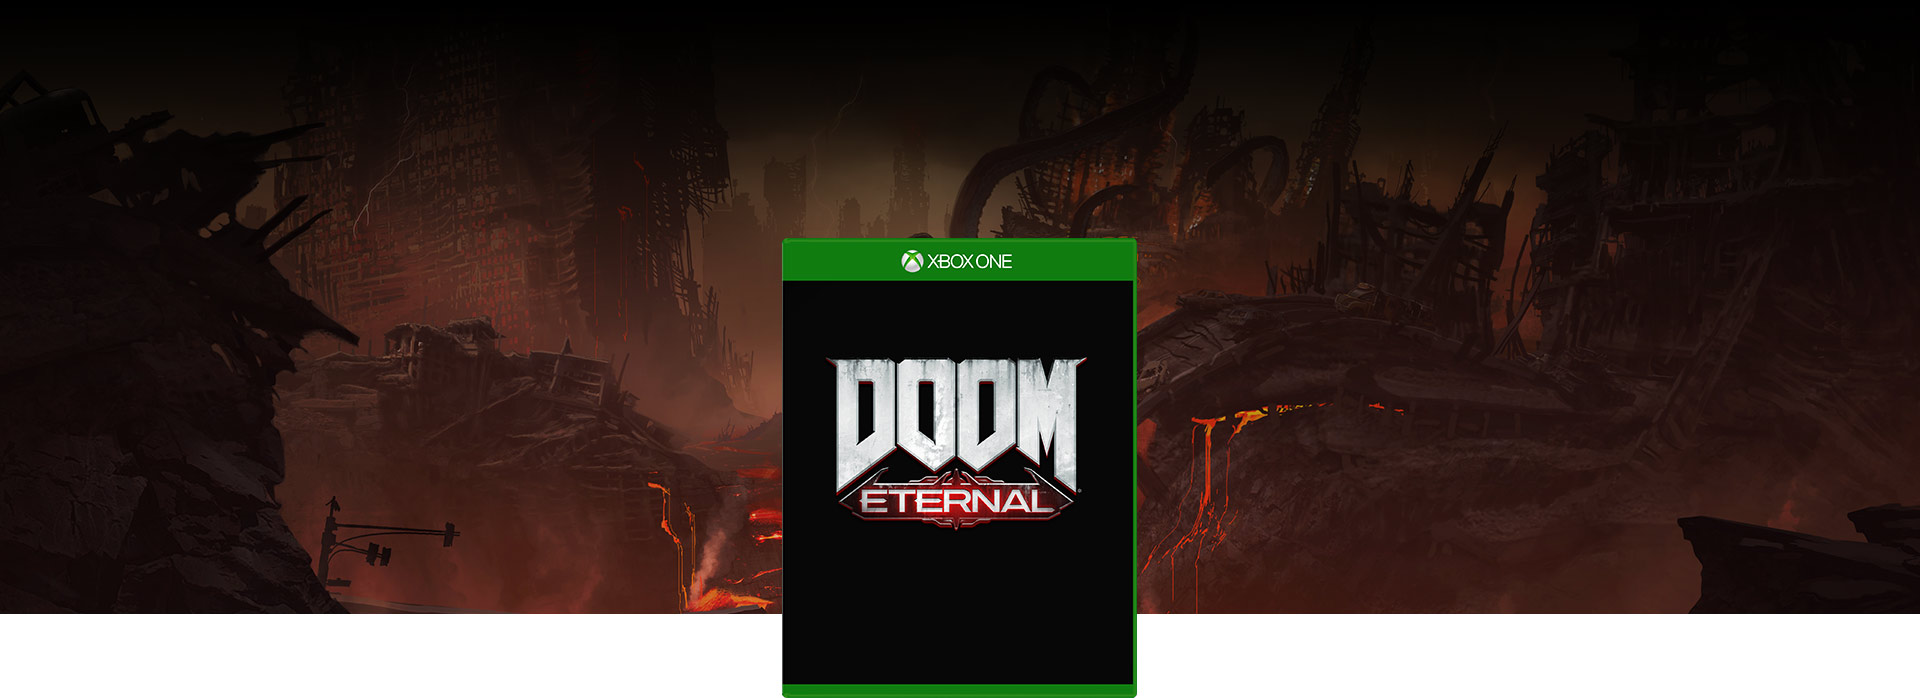 DOOM eternal boxshot, background of tentacles coming out of lava in Hell